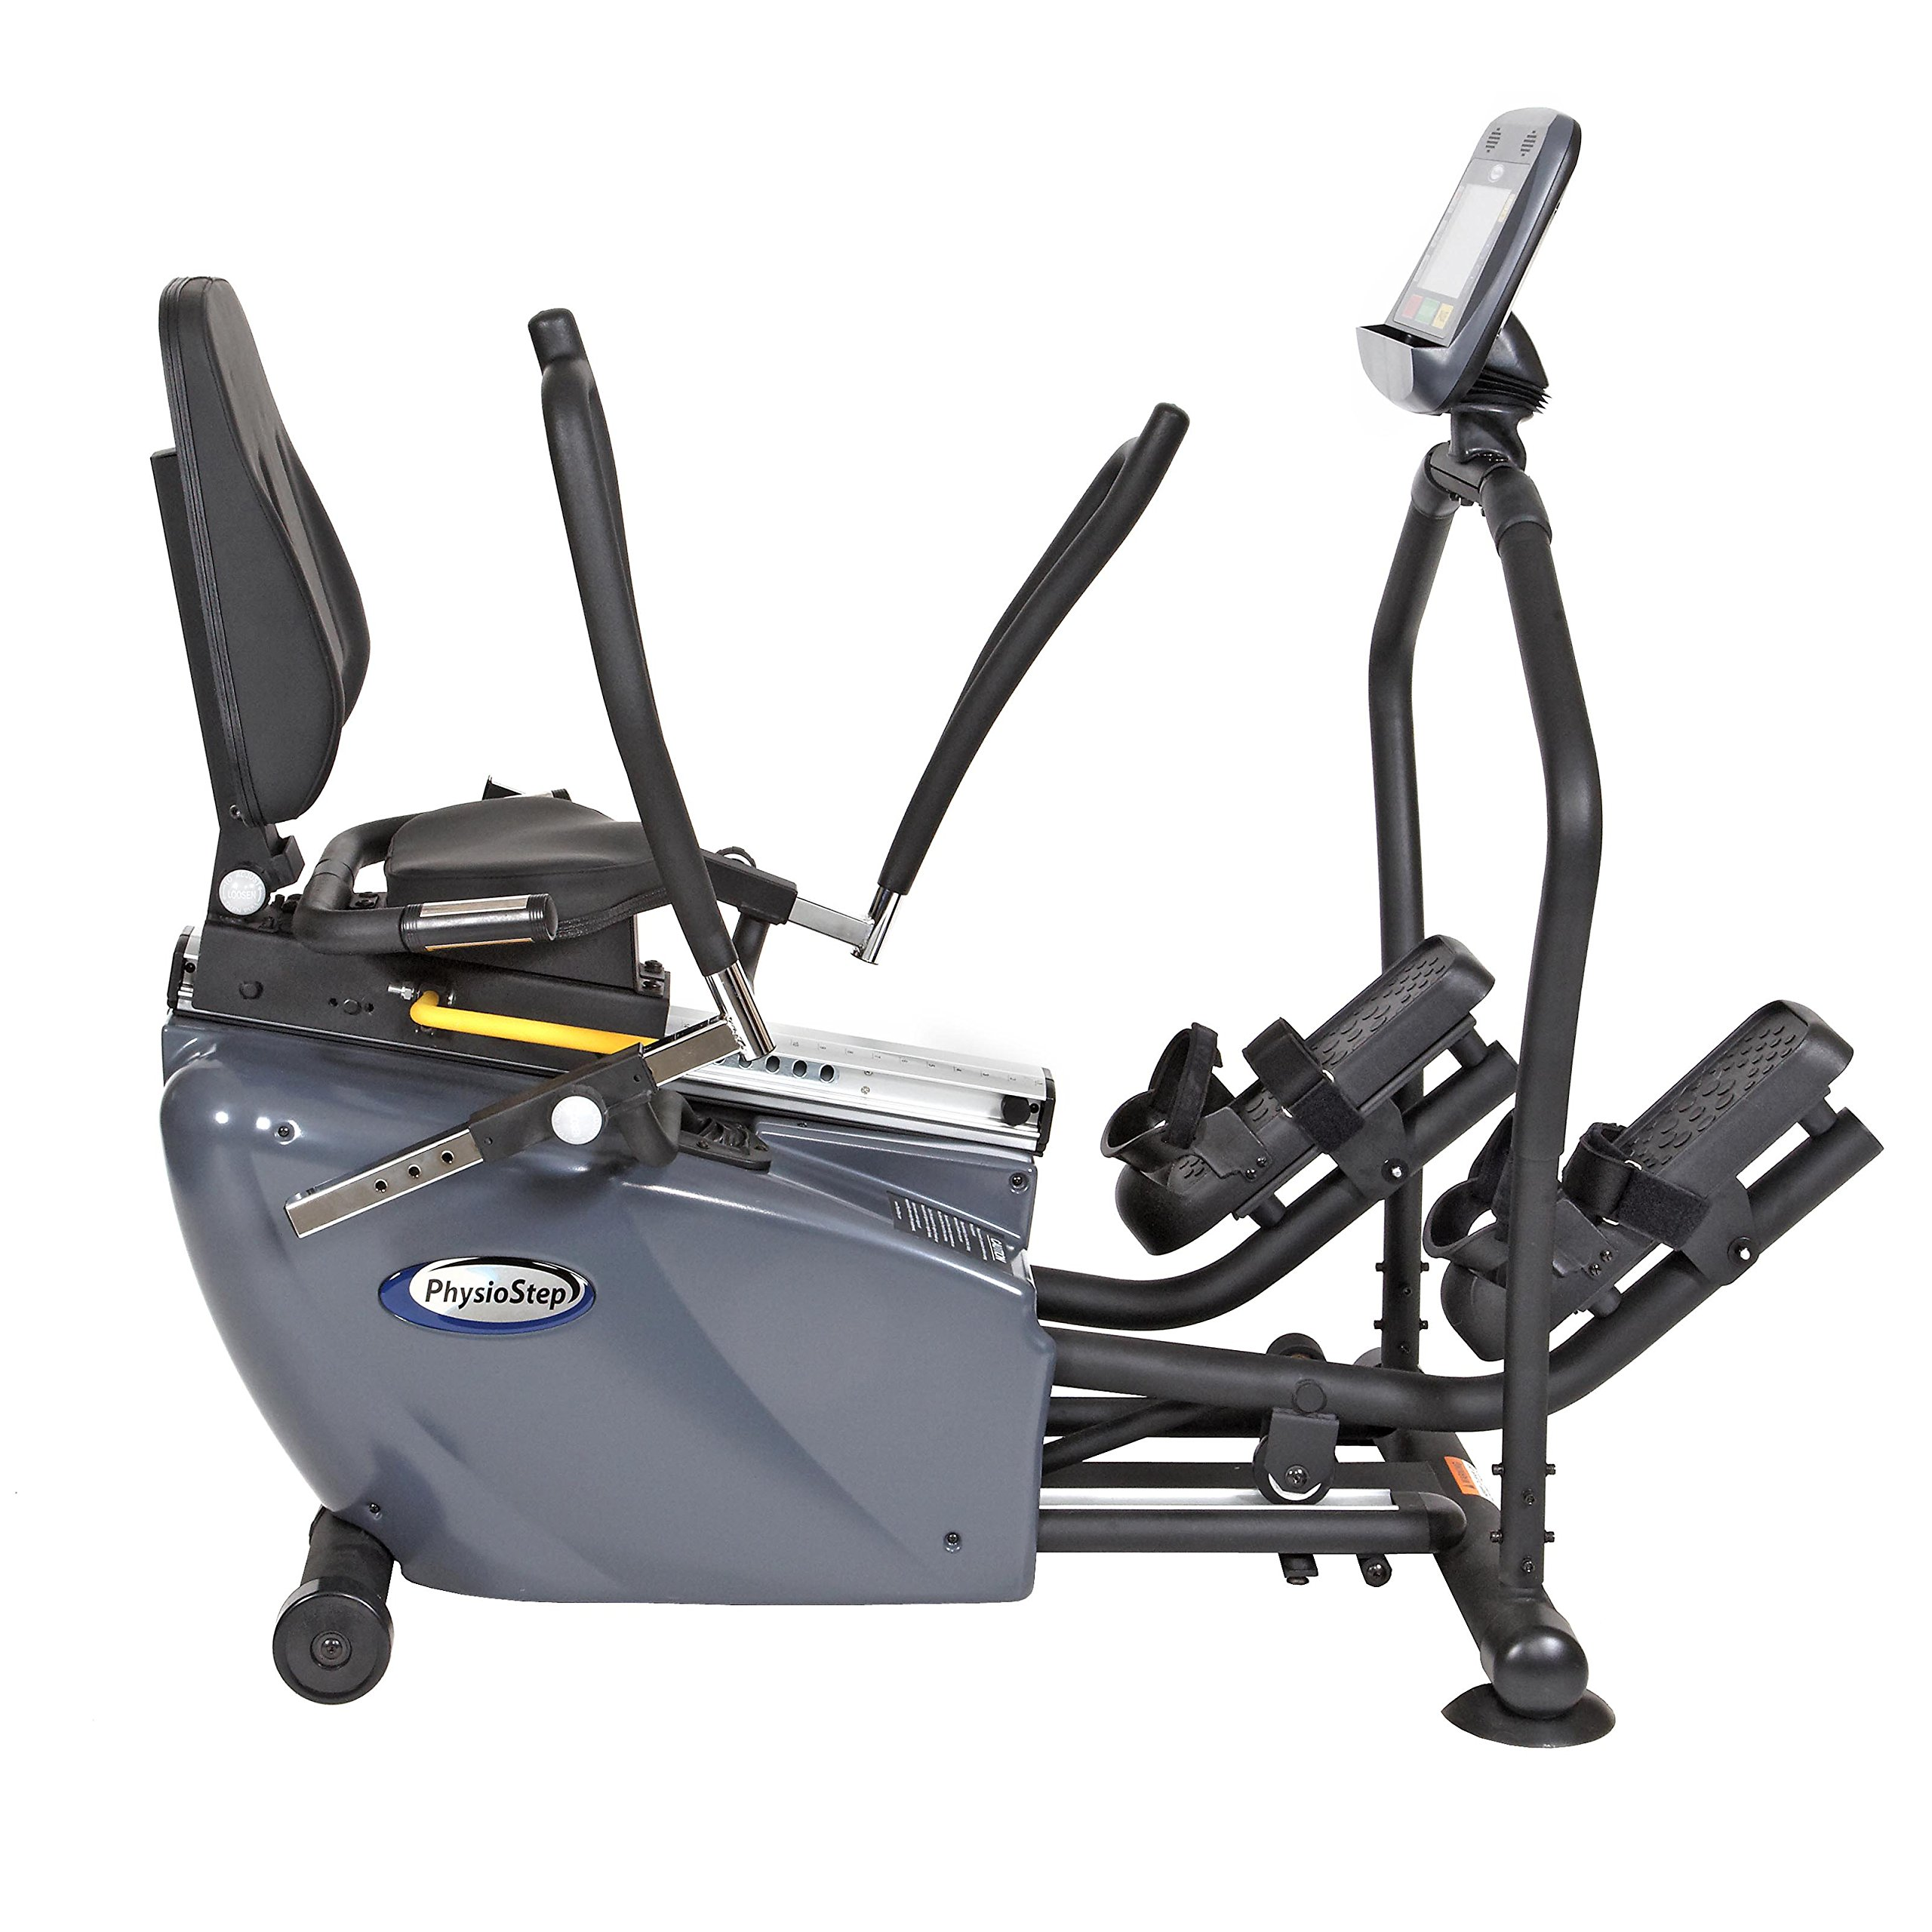 HCI Fitness PhysioStep RXT-1000 Recumbent Elliptical Trainer by HCI Fitness (Image #1)